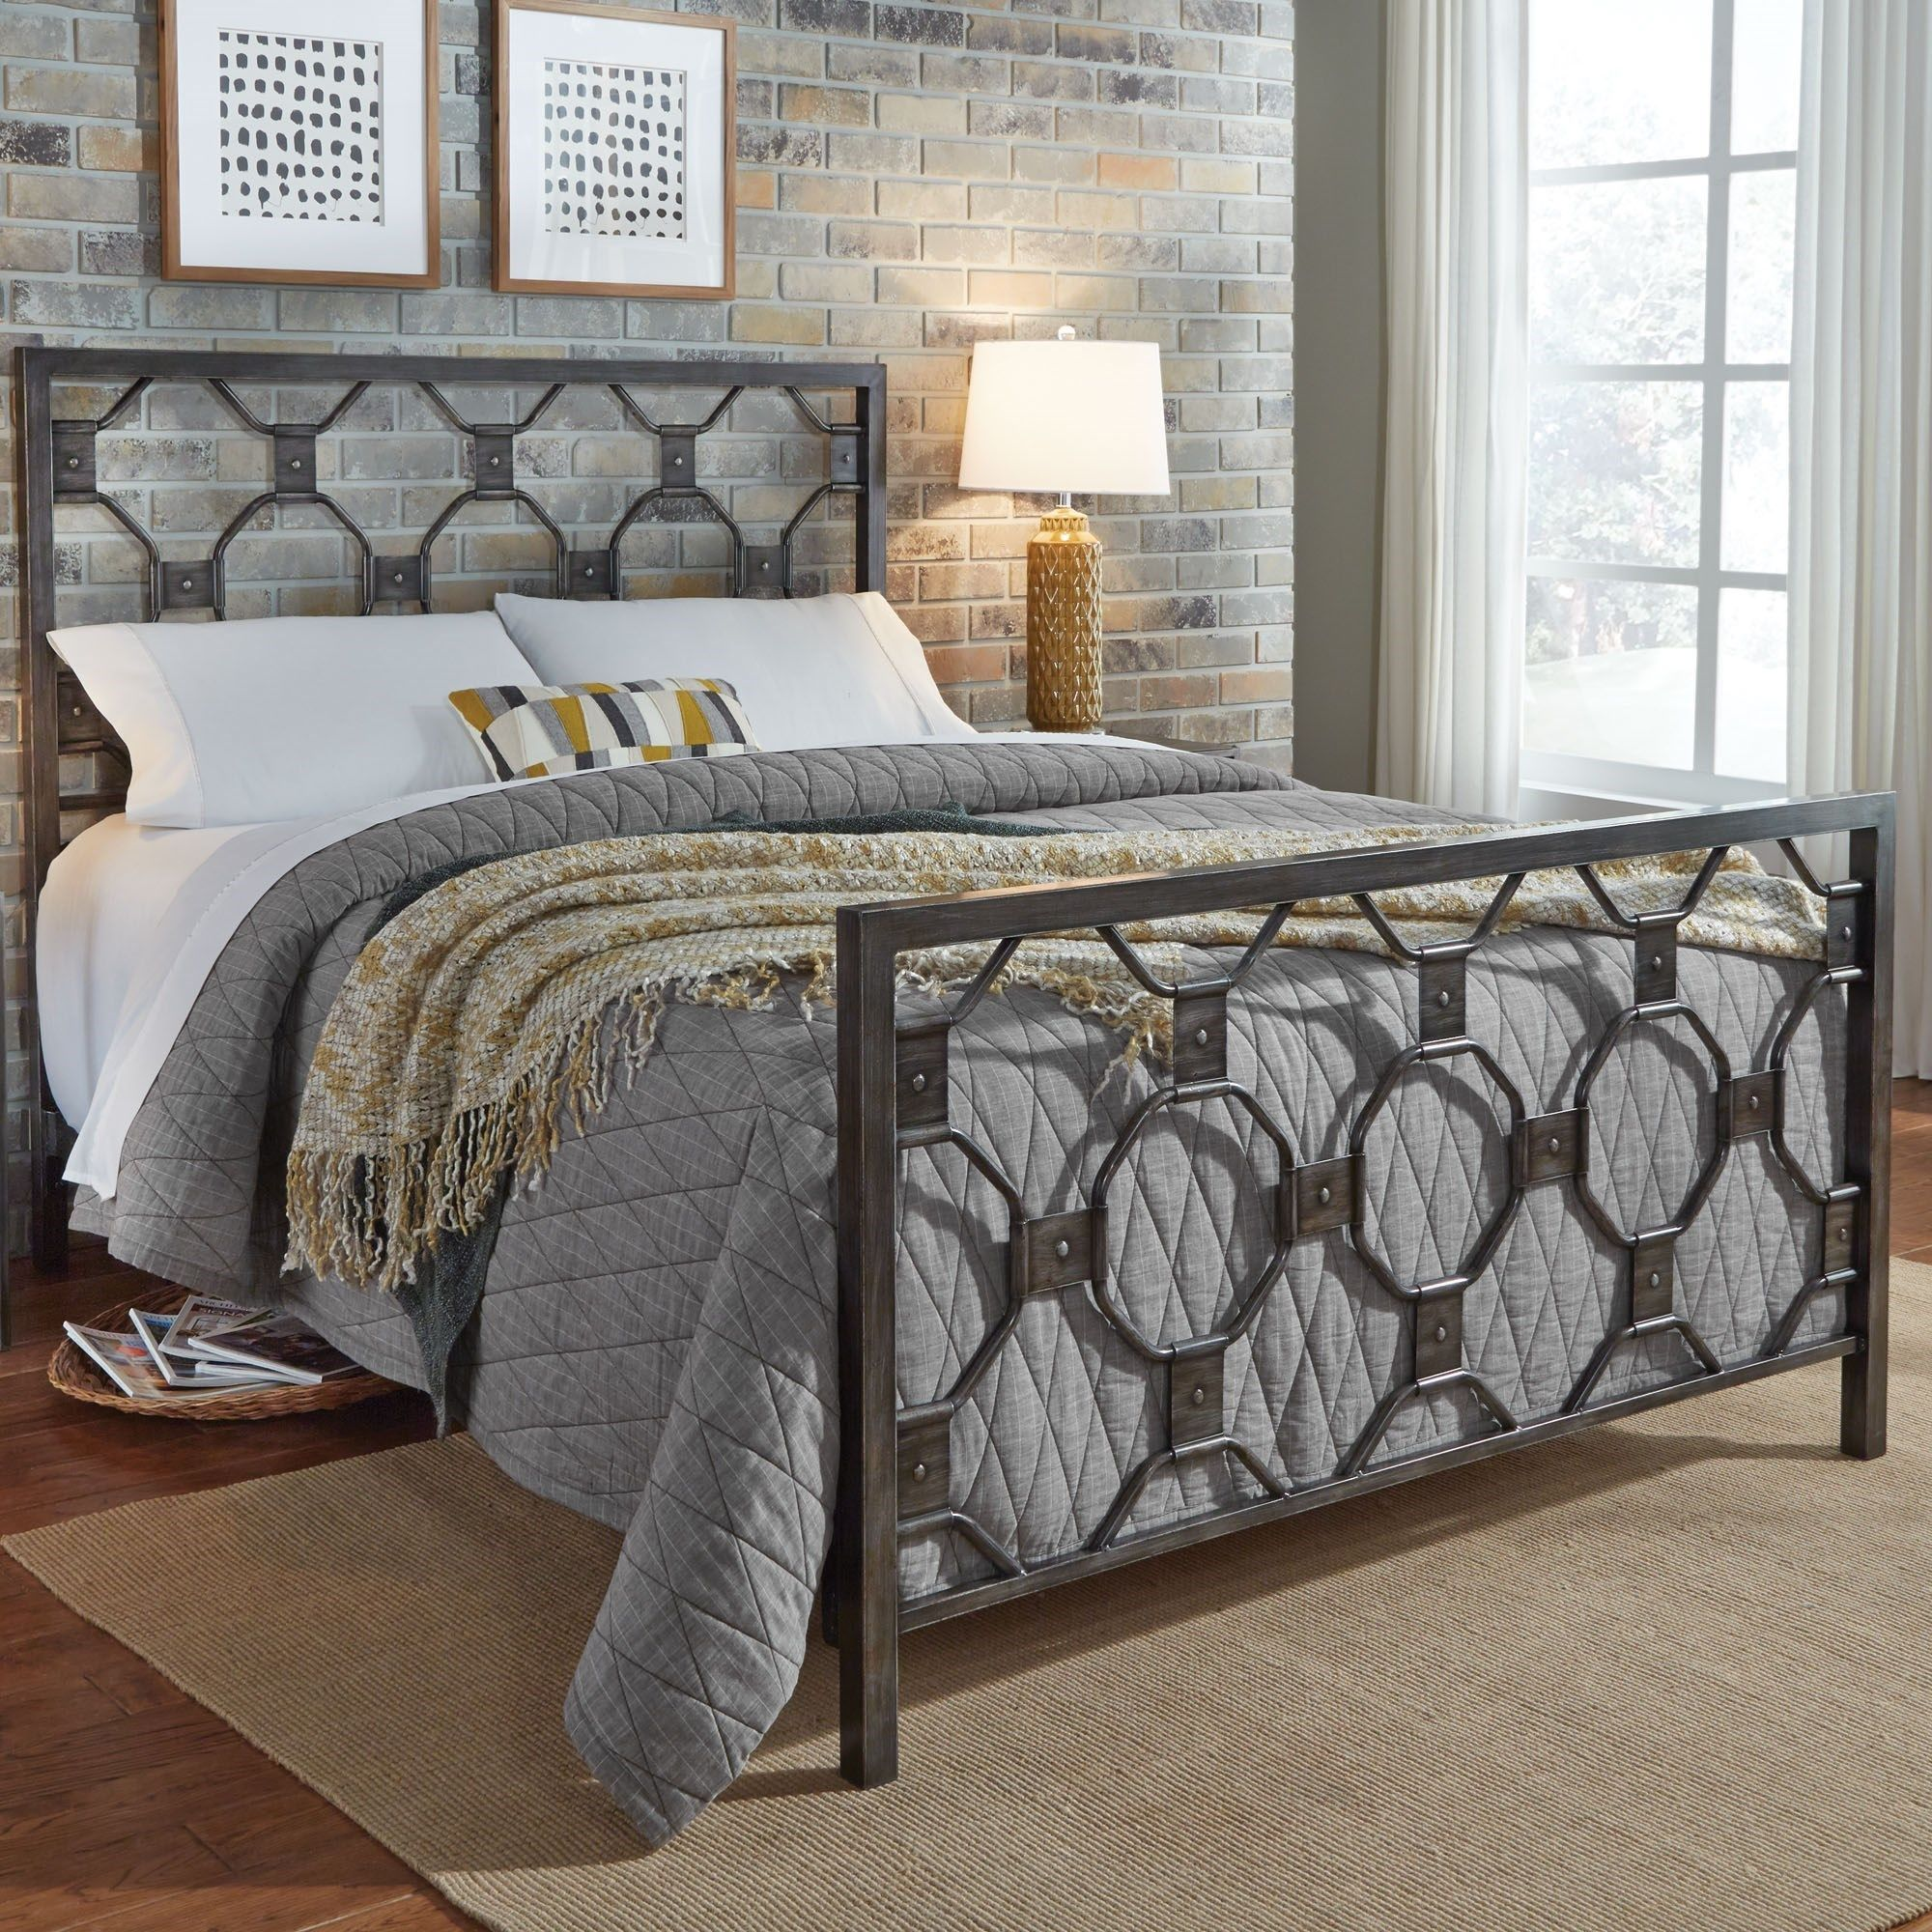 Fashion Bed Group Baxter Full Baxter Complete Metal Bed